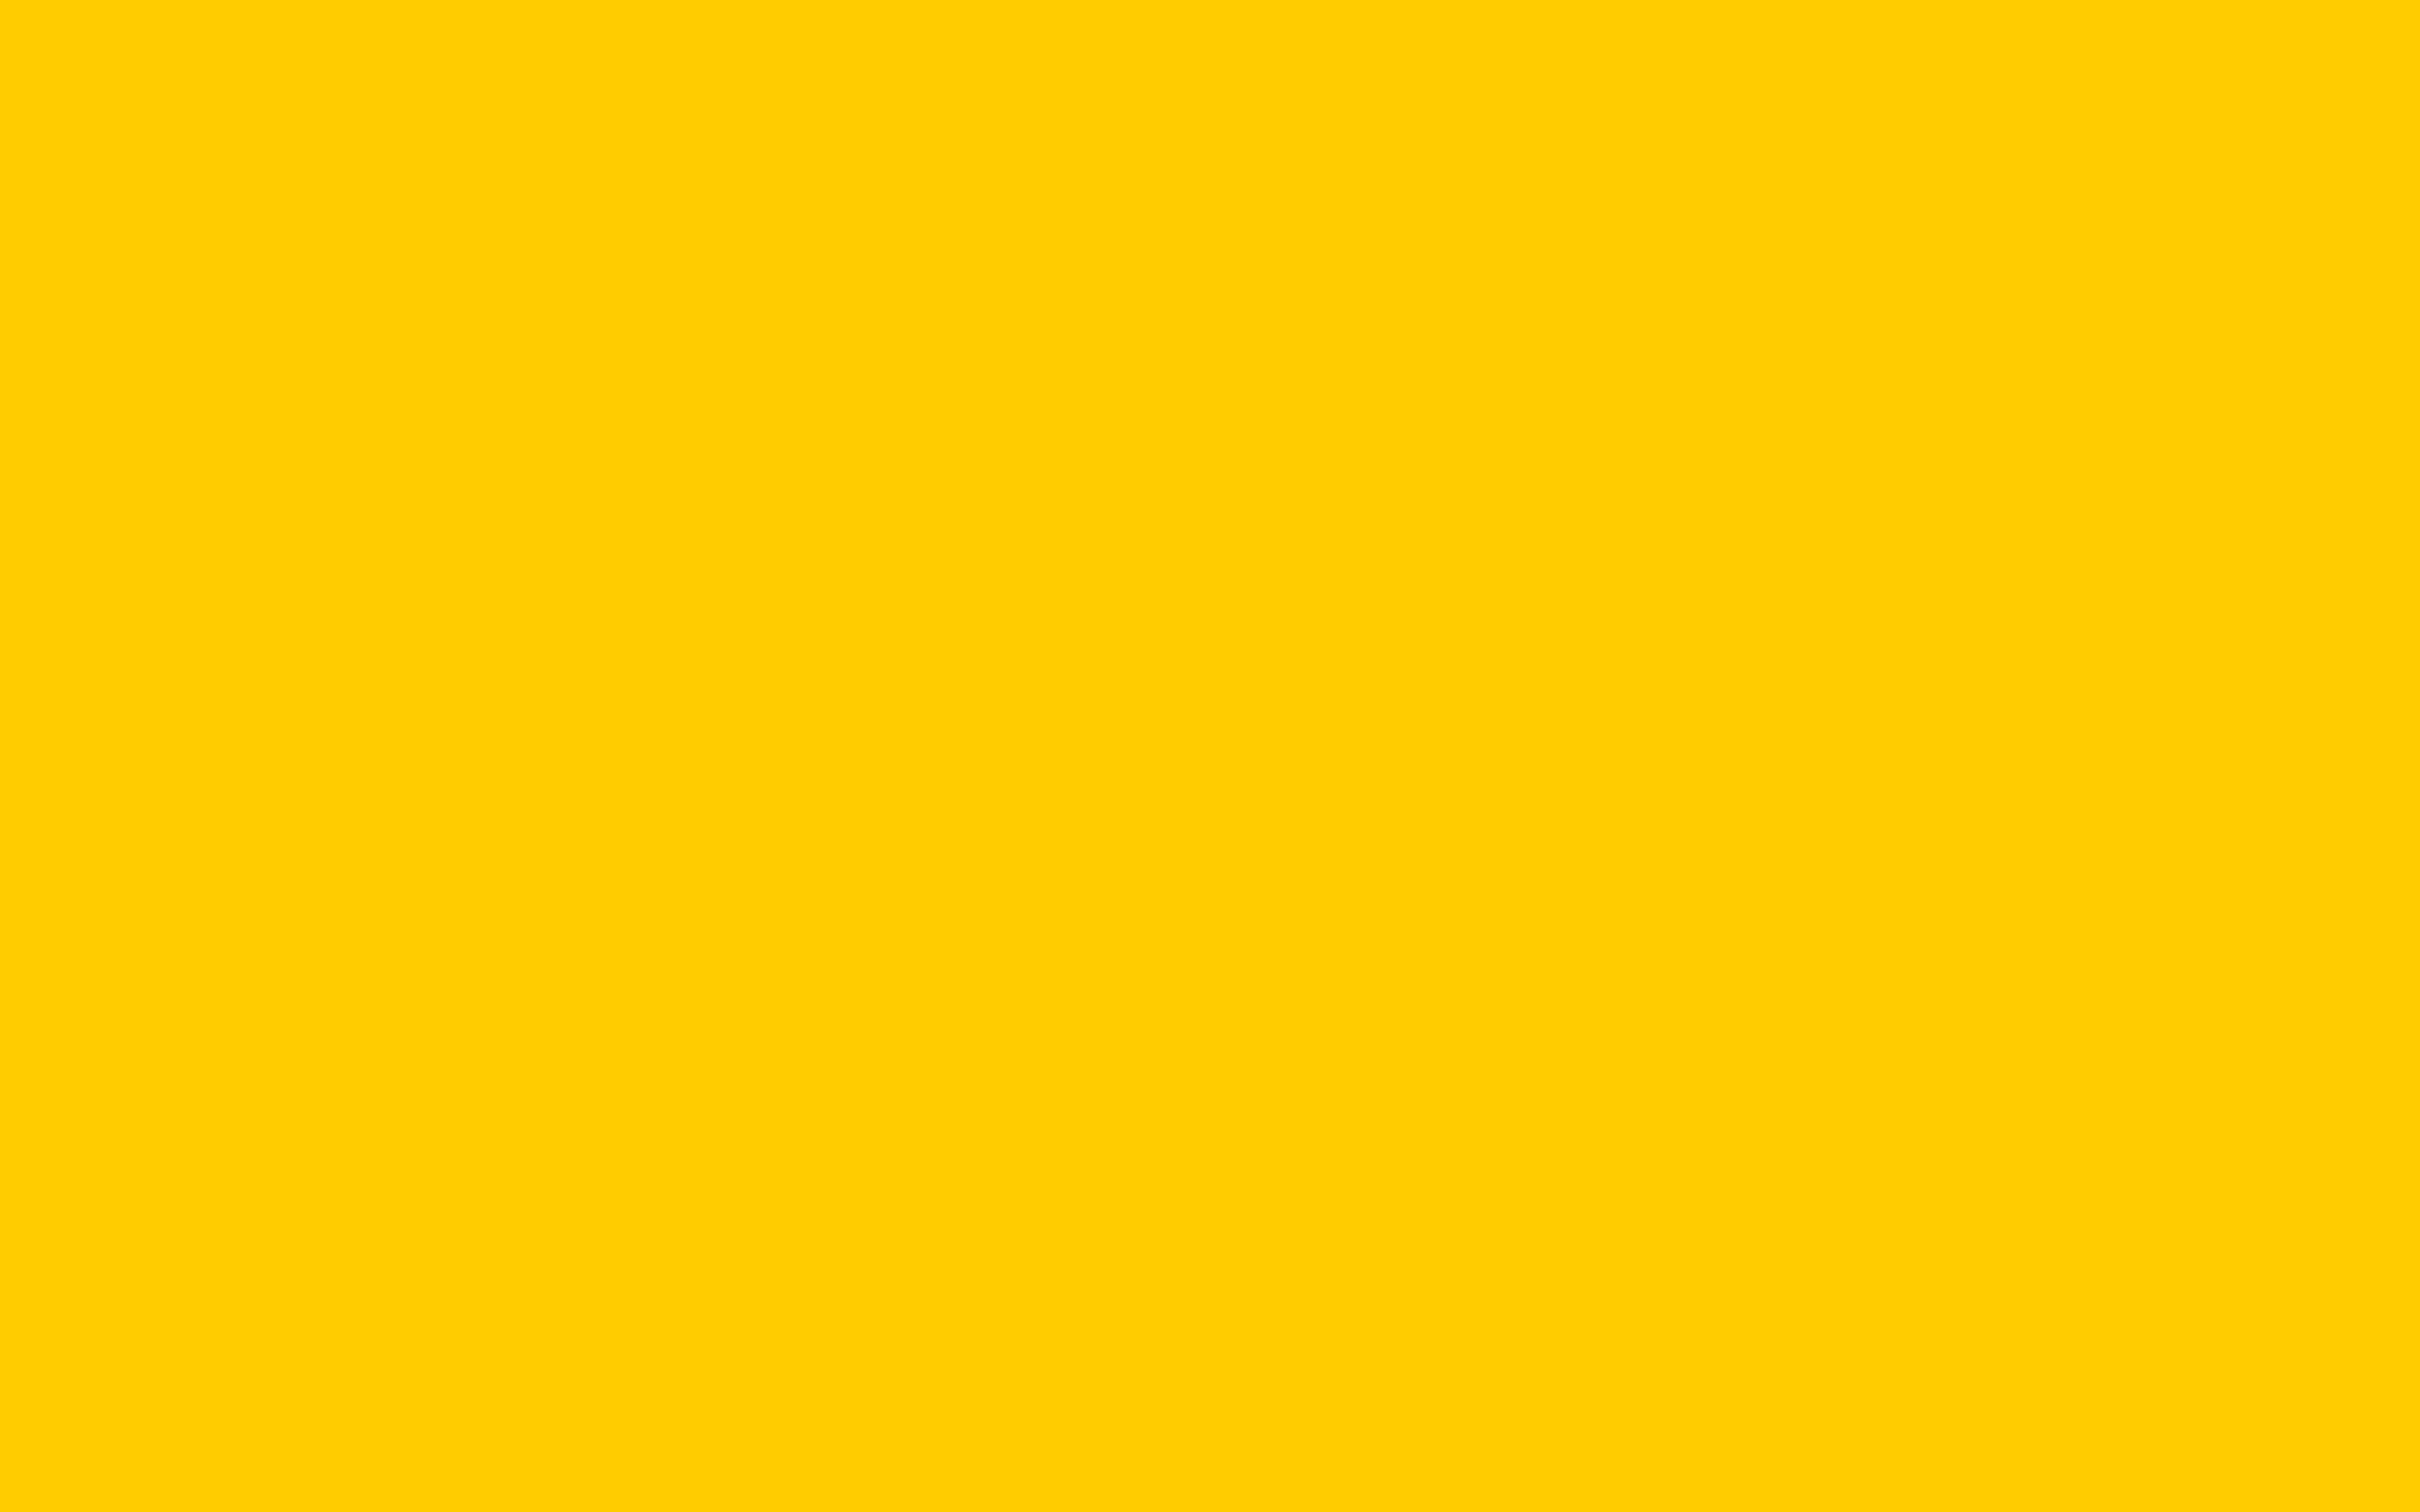 2560x1600 USC Gold Solid Color Background